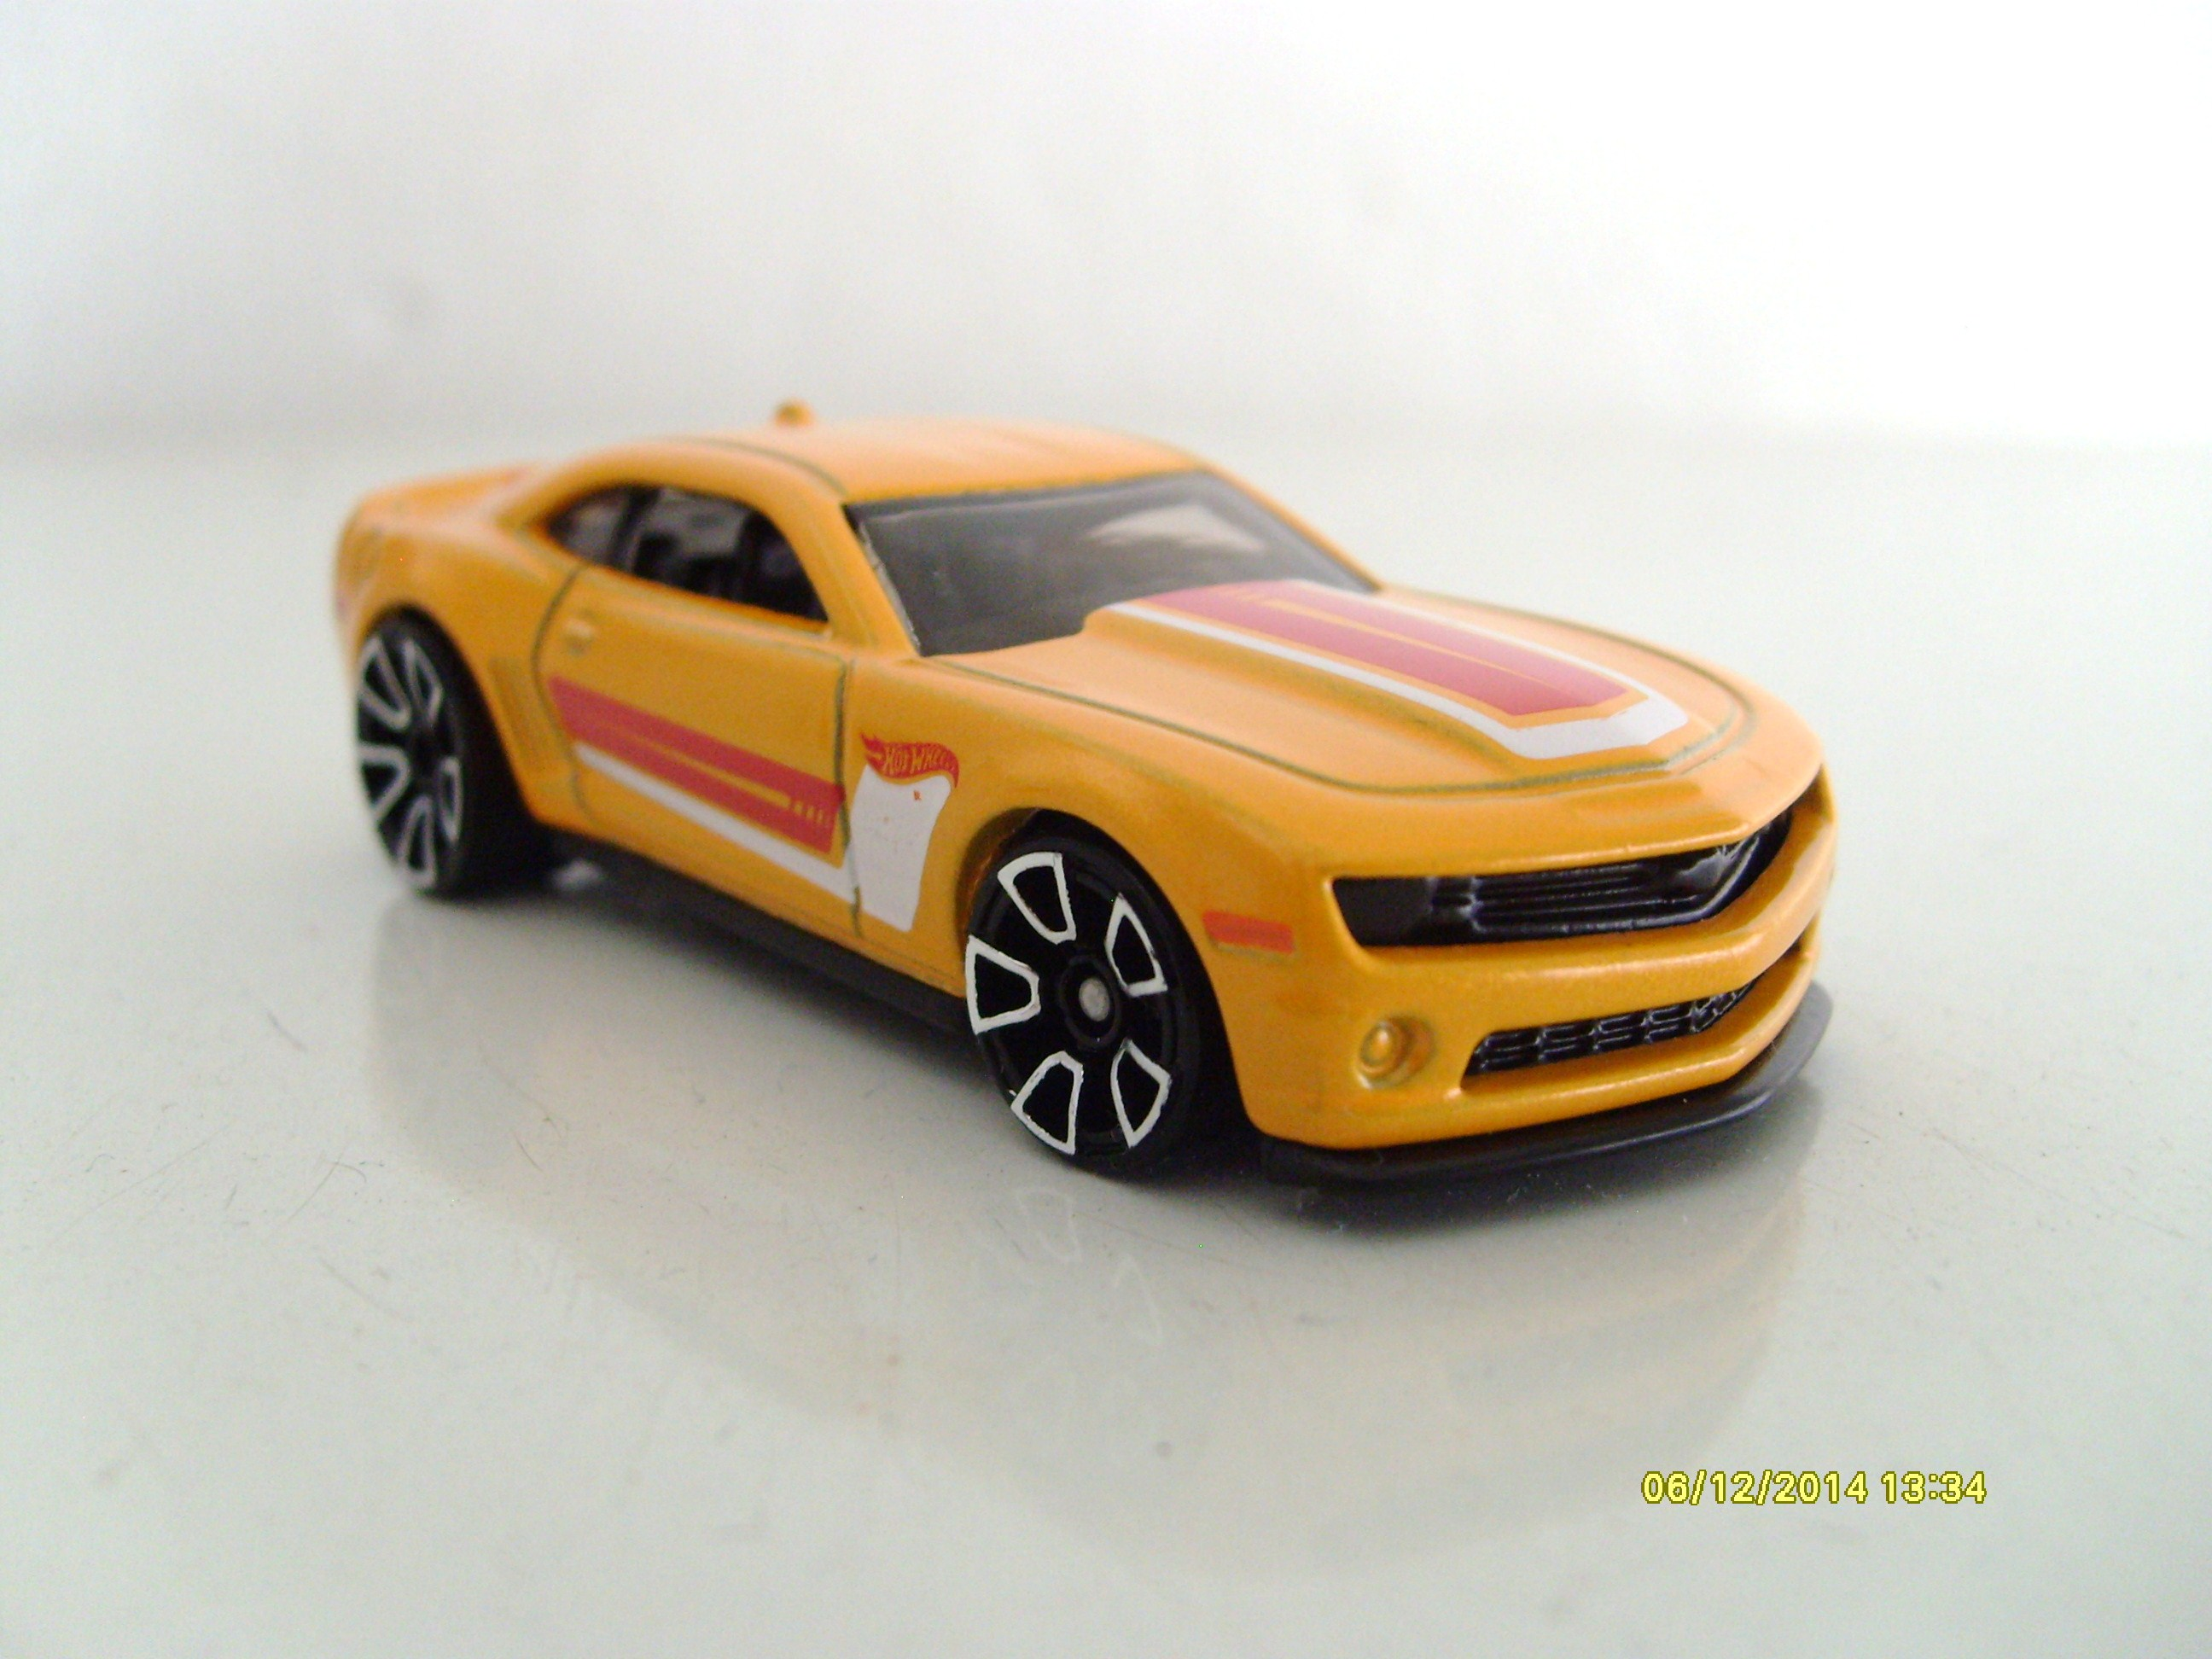 versions the 2013 hot wheels - Rare Hot Wheels Cars 2013